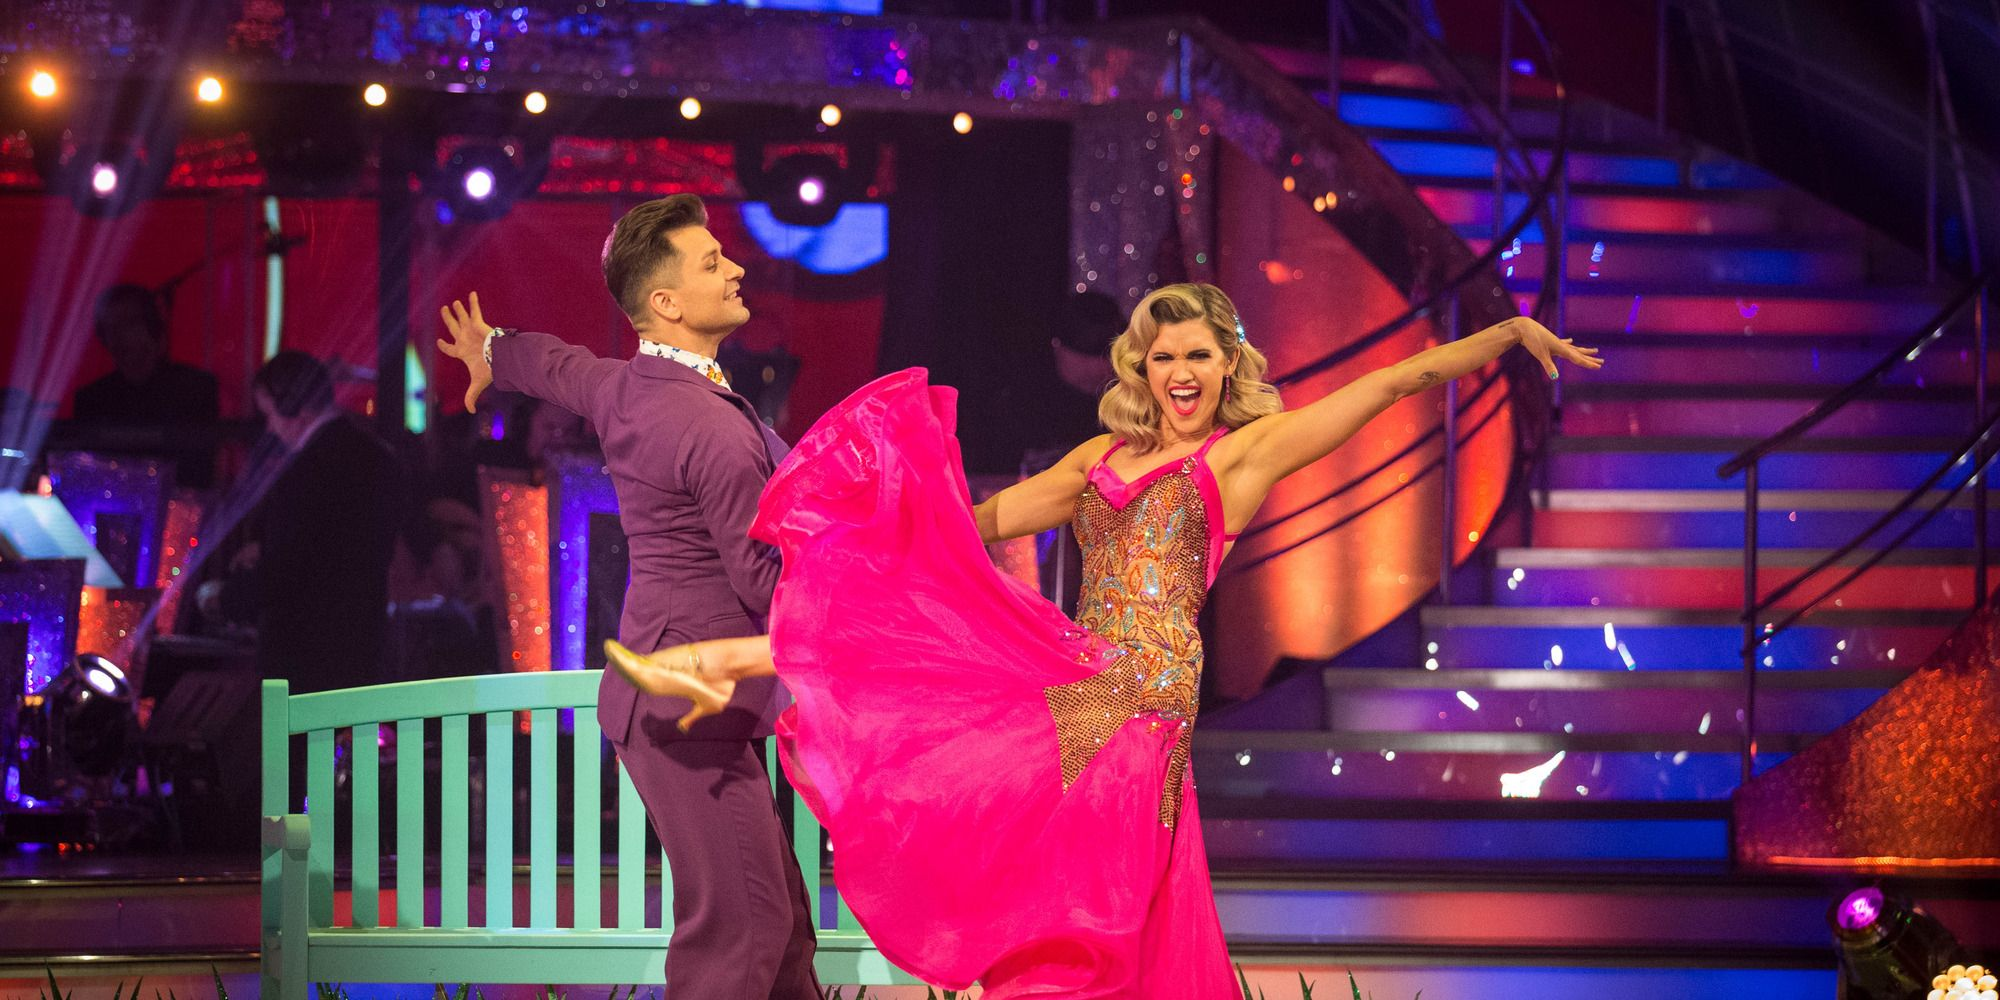 Strictly Come Dancing week 7: Ashley Roberts and Pasha Kovalev